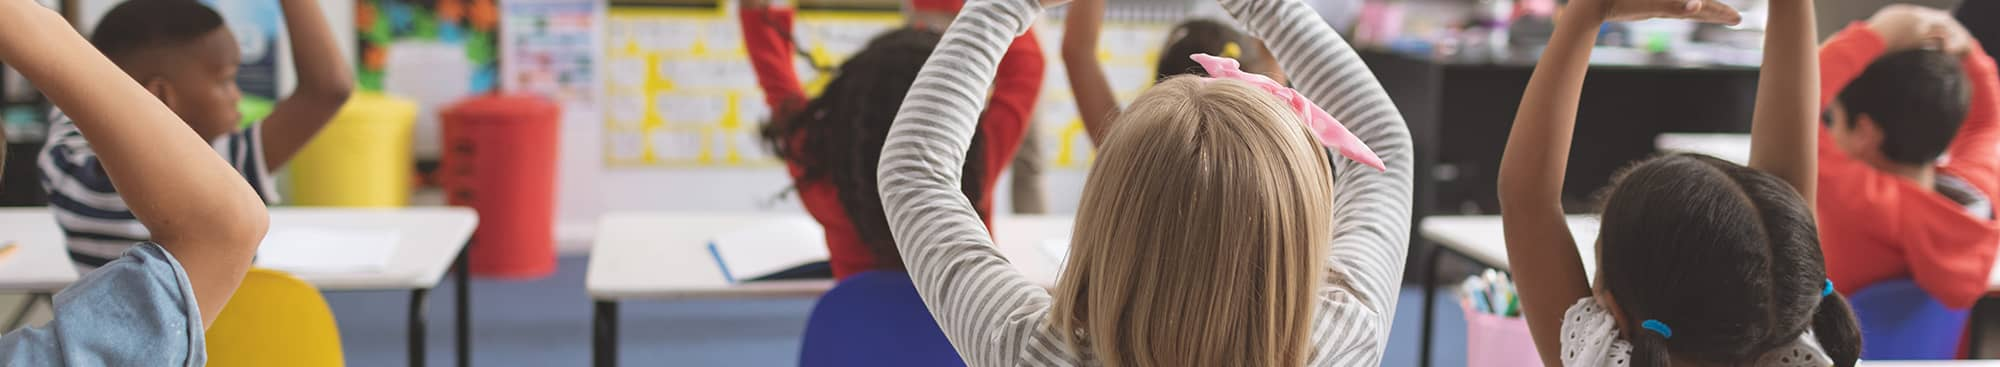 Students Stretching Arms to the Sky in a Classroom